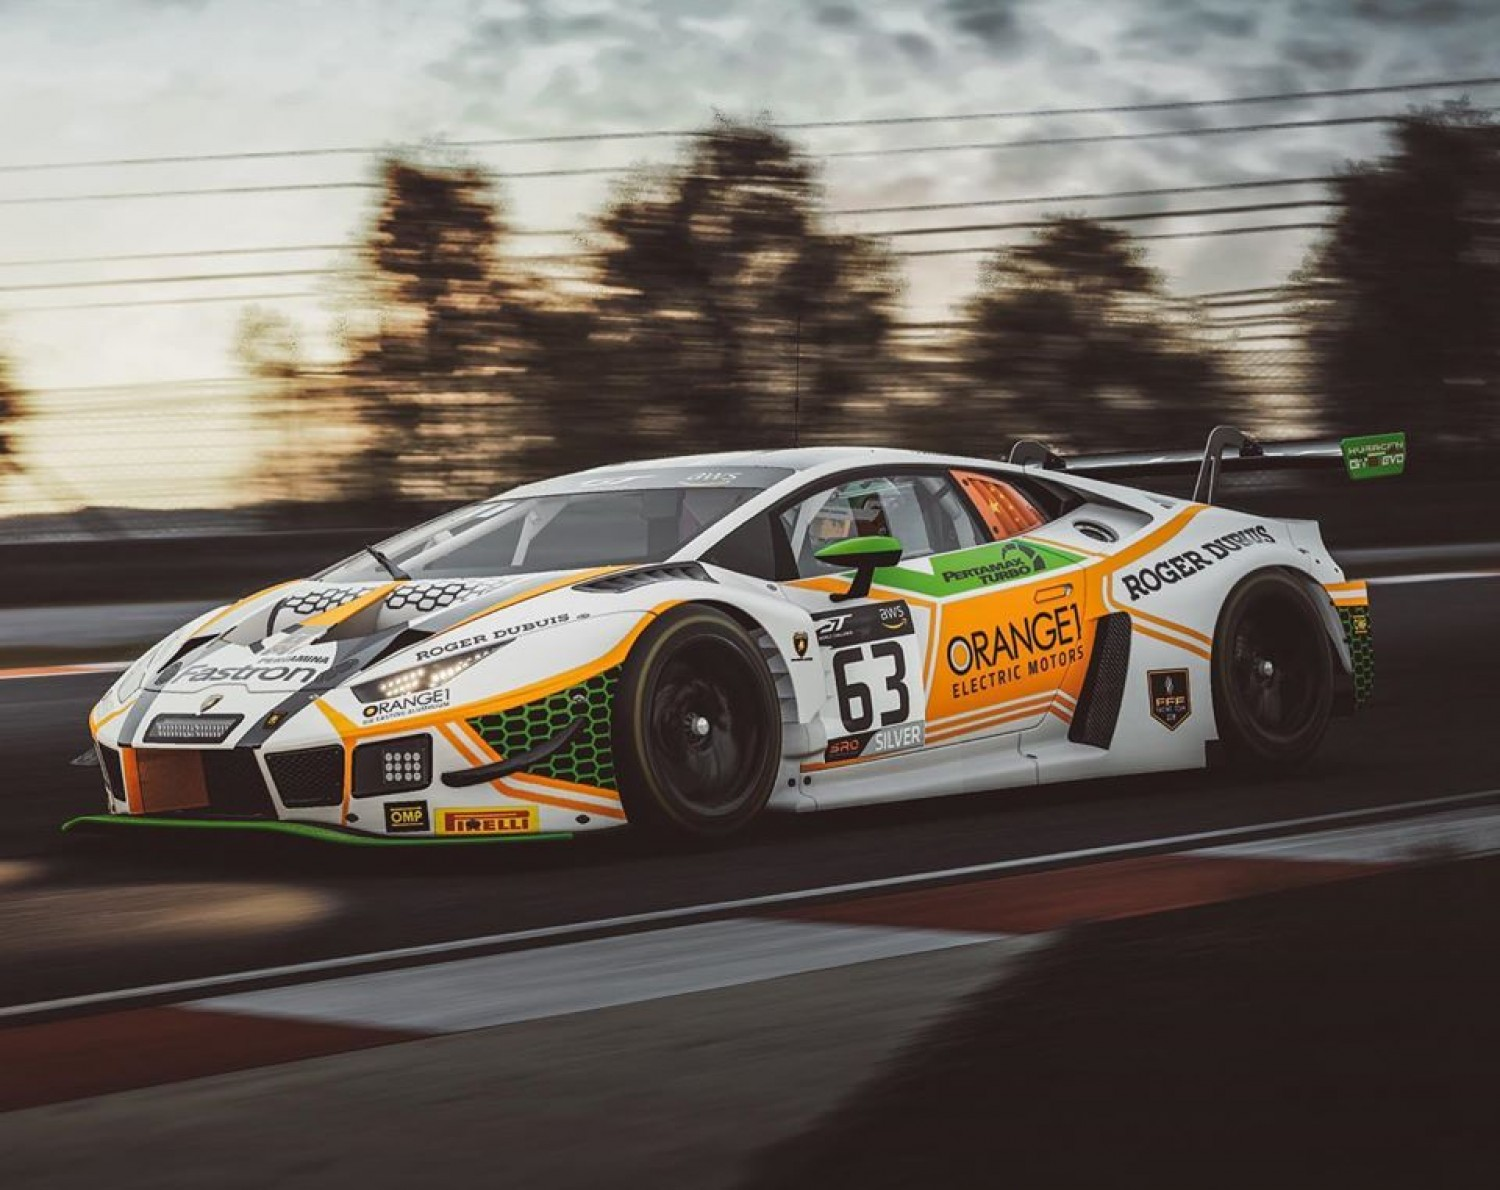 FFF Esports confirms successful virtual racers for real-world Lamborghini test